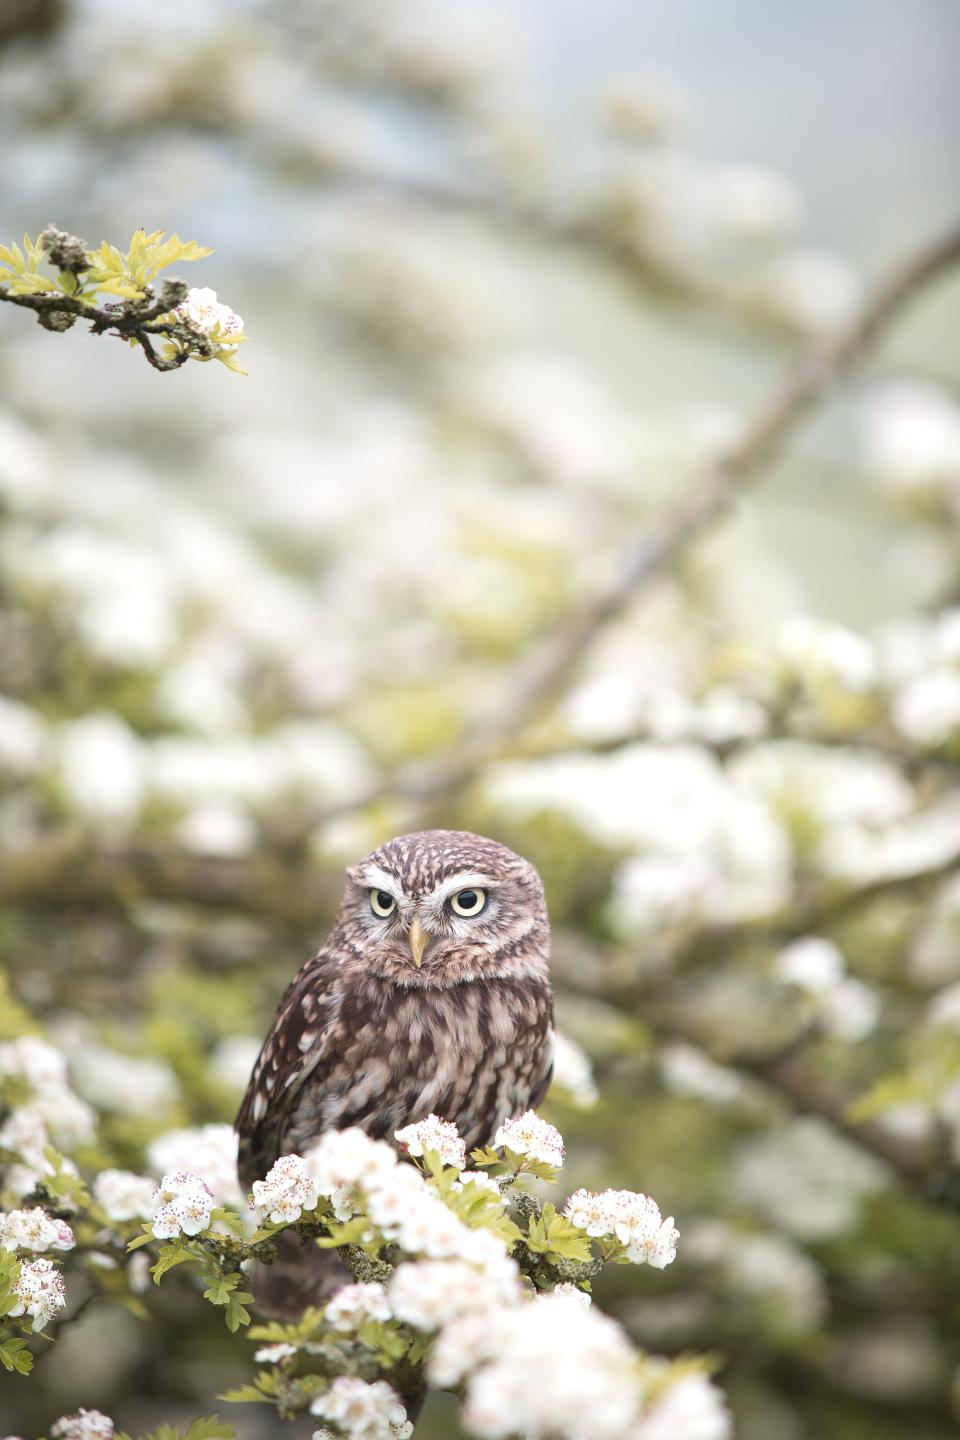 animals, birds, owl, perched, flowers, nature, blossoms, branches, trees, white, petals, still, bokeh, beautiful, white, brown, green, pastels